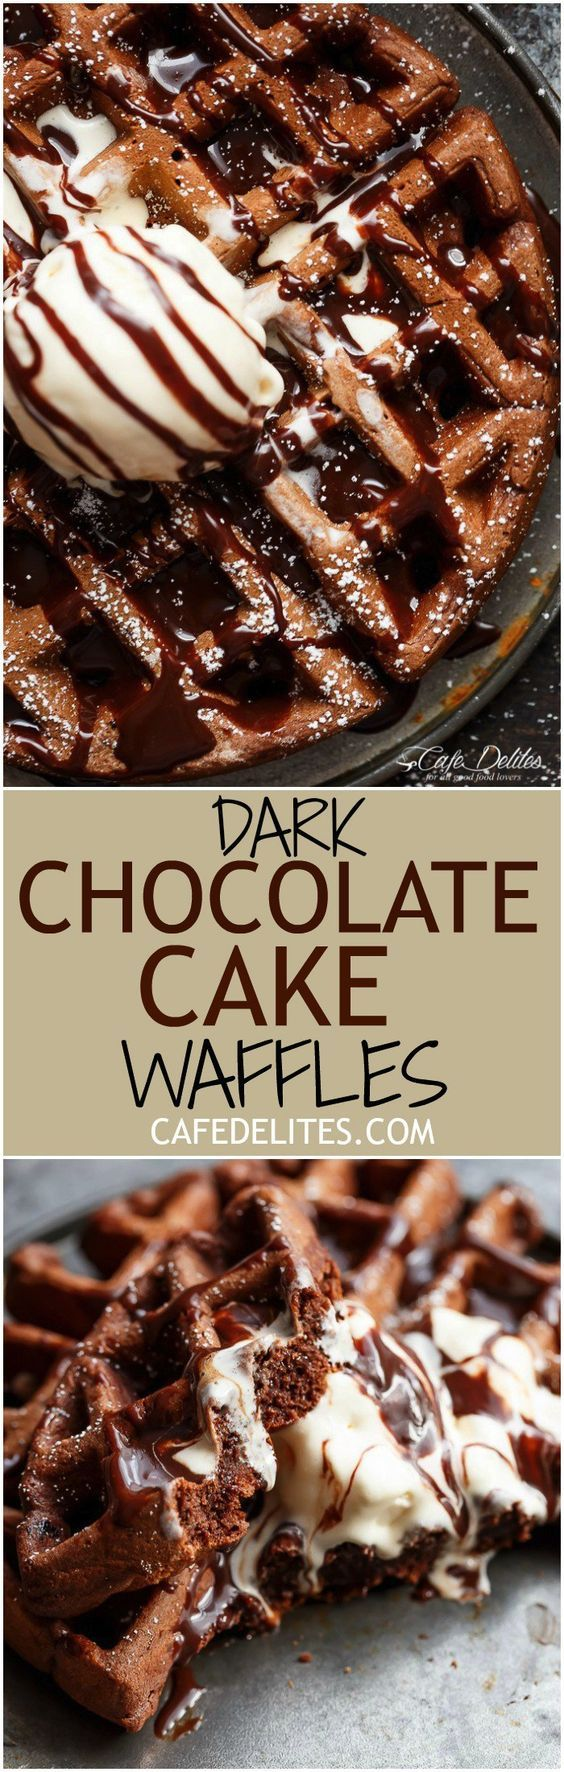 Dark Chocolate Cake Waffles - Rich and decadent, chocolate cake transformed into waffles! Perfect for breakfast or dessert with no complicated steps!